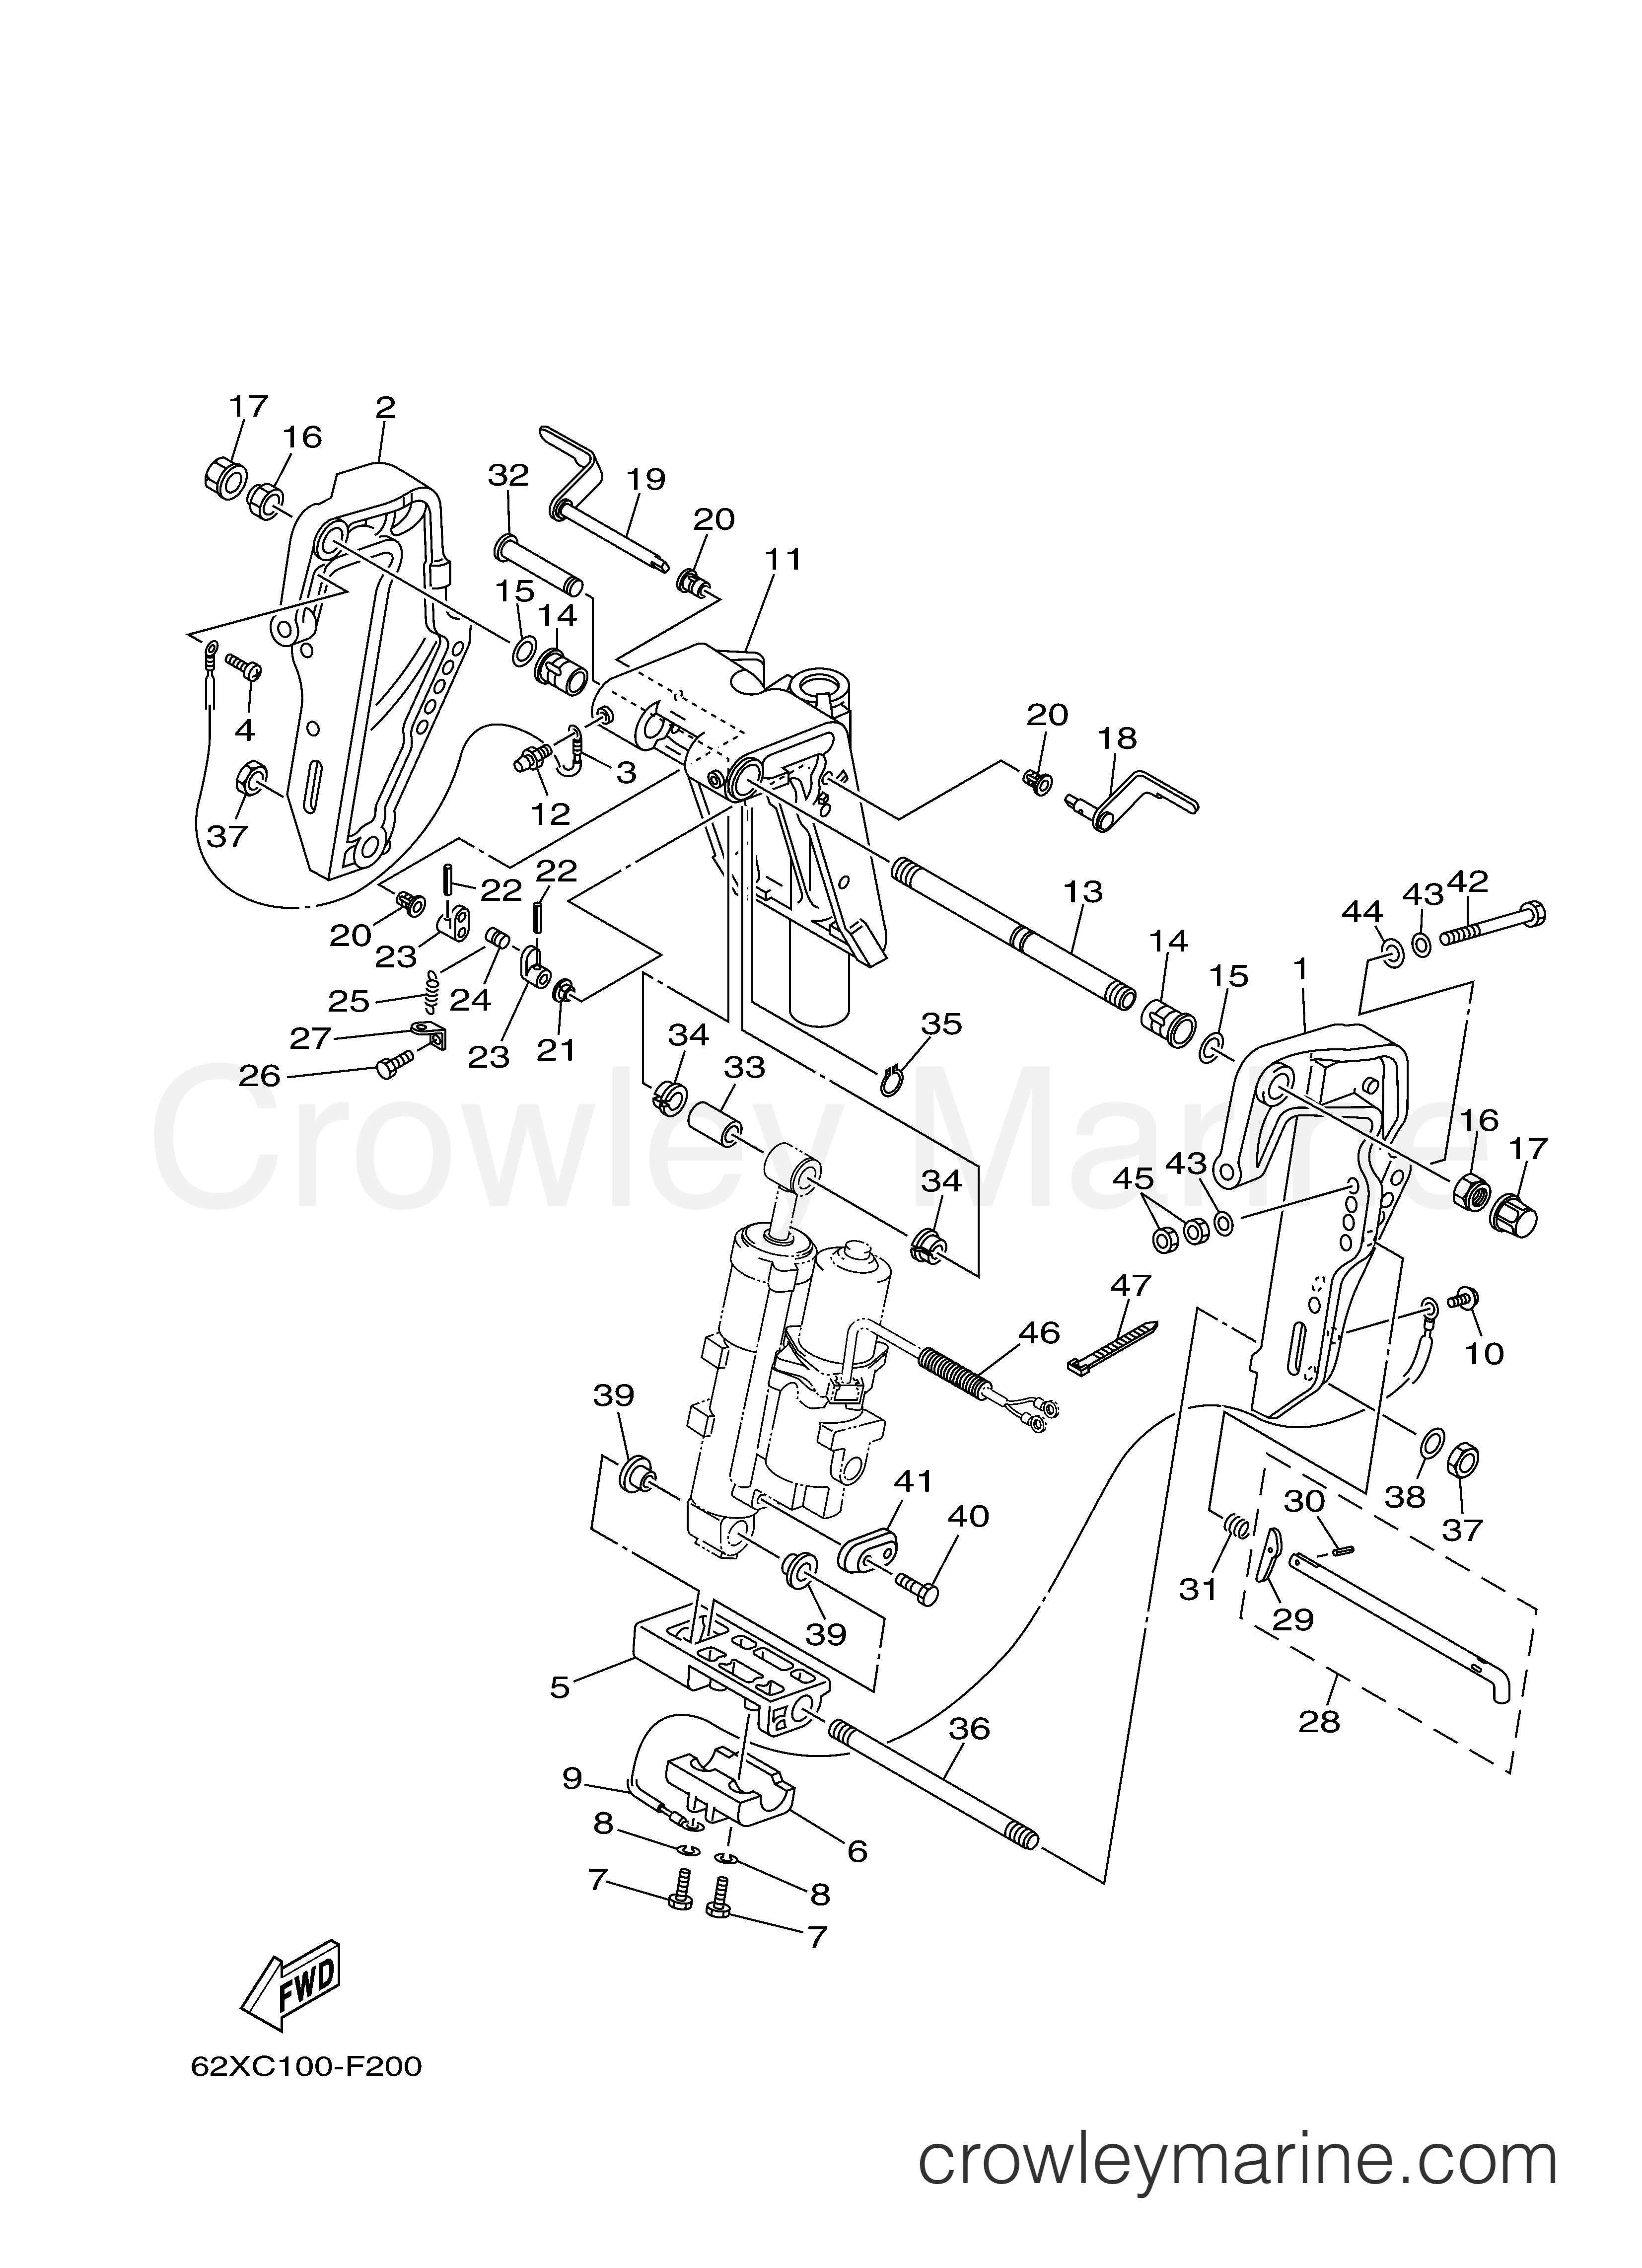 CKET 1 - 2008 Yamaha Outboard 50hp 50TLR | Crowley Marine Yamaha Tlr Outboard Wiring Diagram on